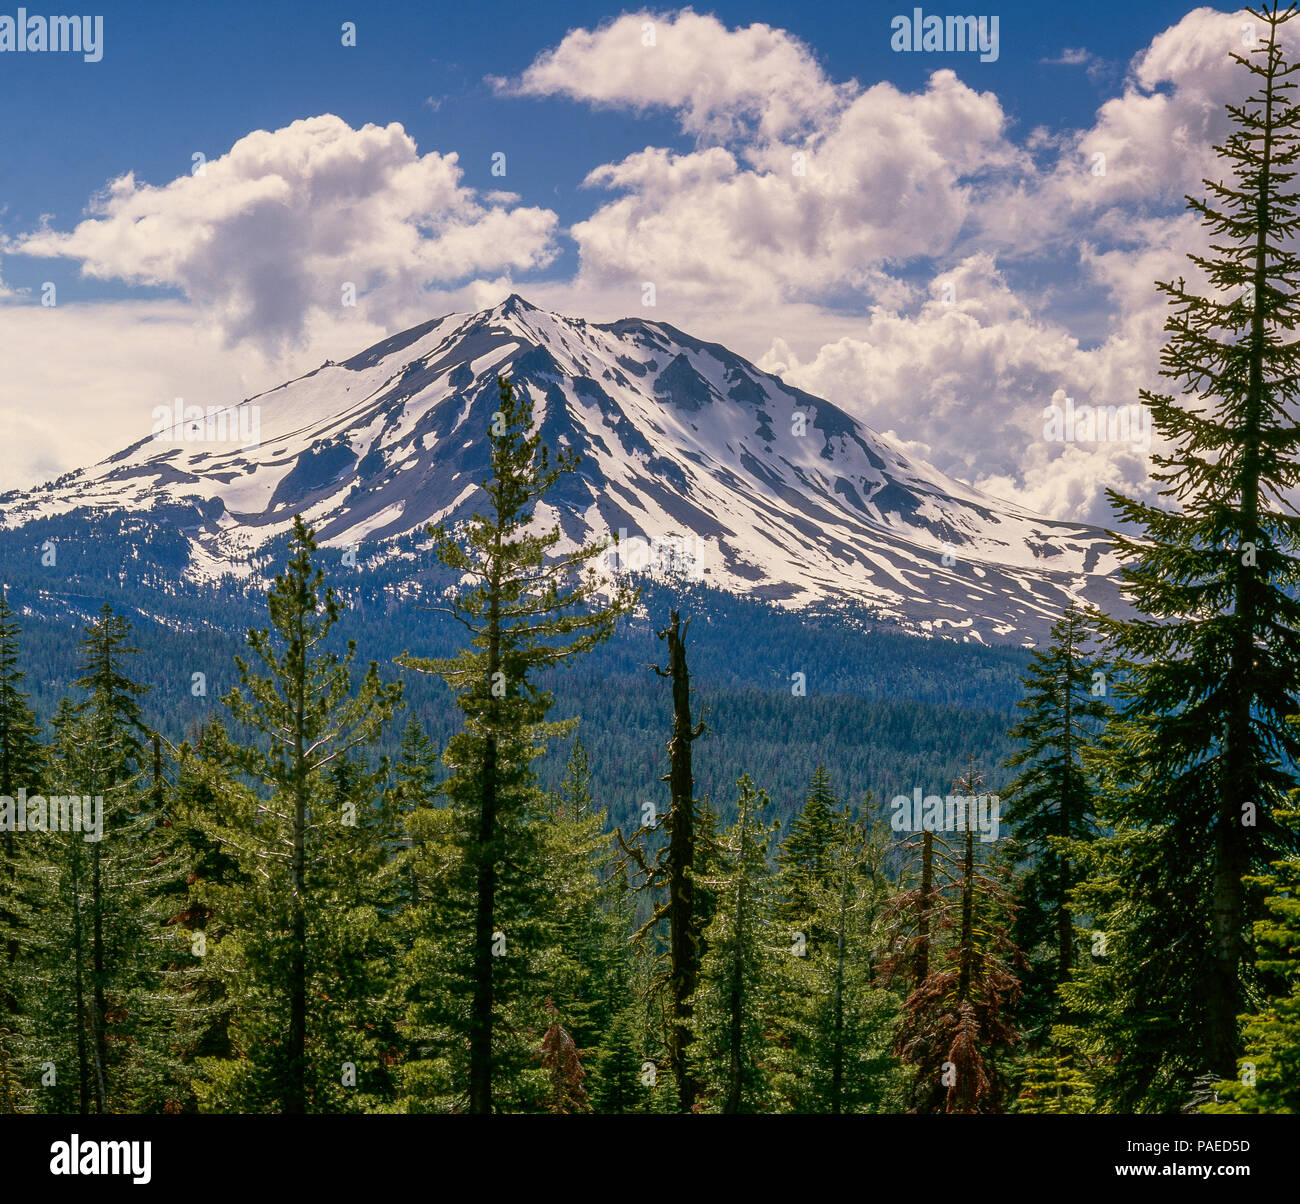 Lassen Peak, Lassen Volcanic National Park, California - Stock Image